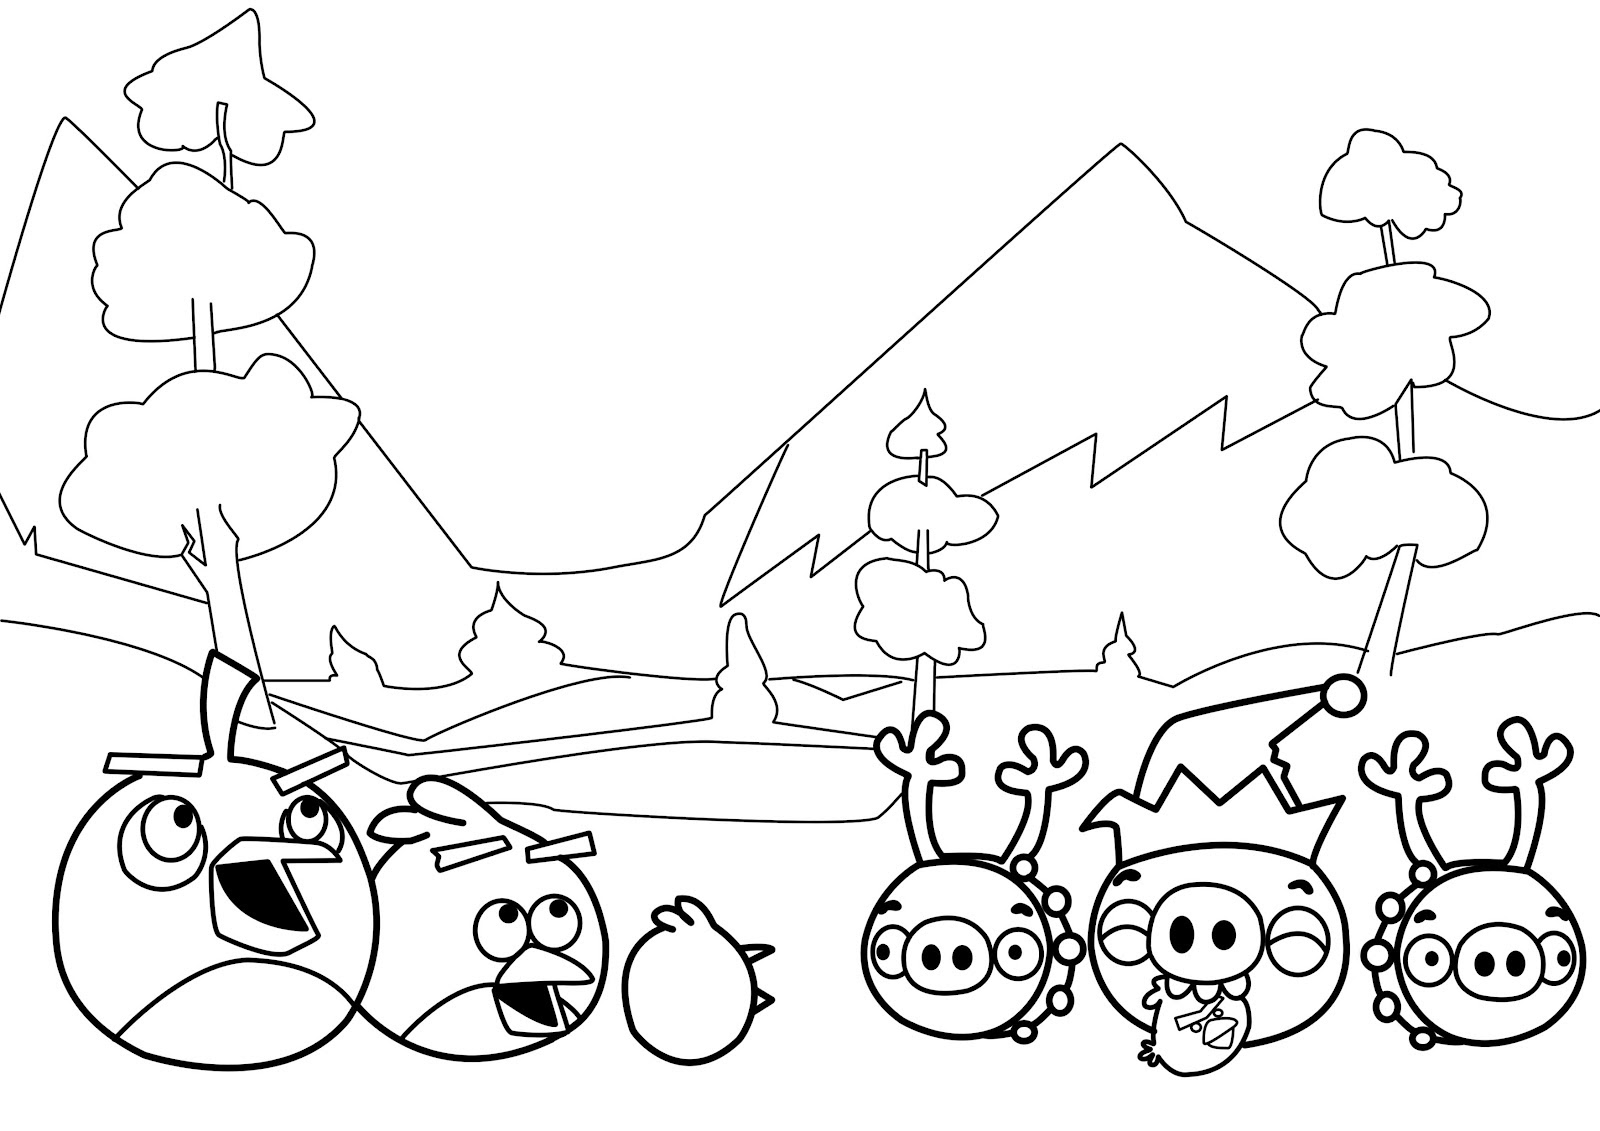 Elegant Angry Birds Star Wars 2 Coloring Pages Top Free Coloring